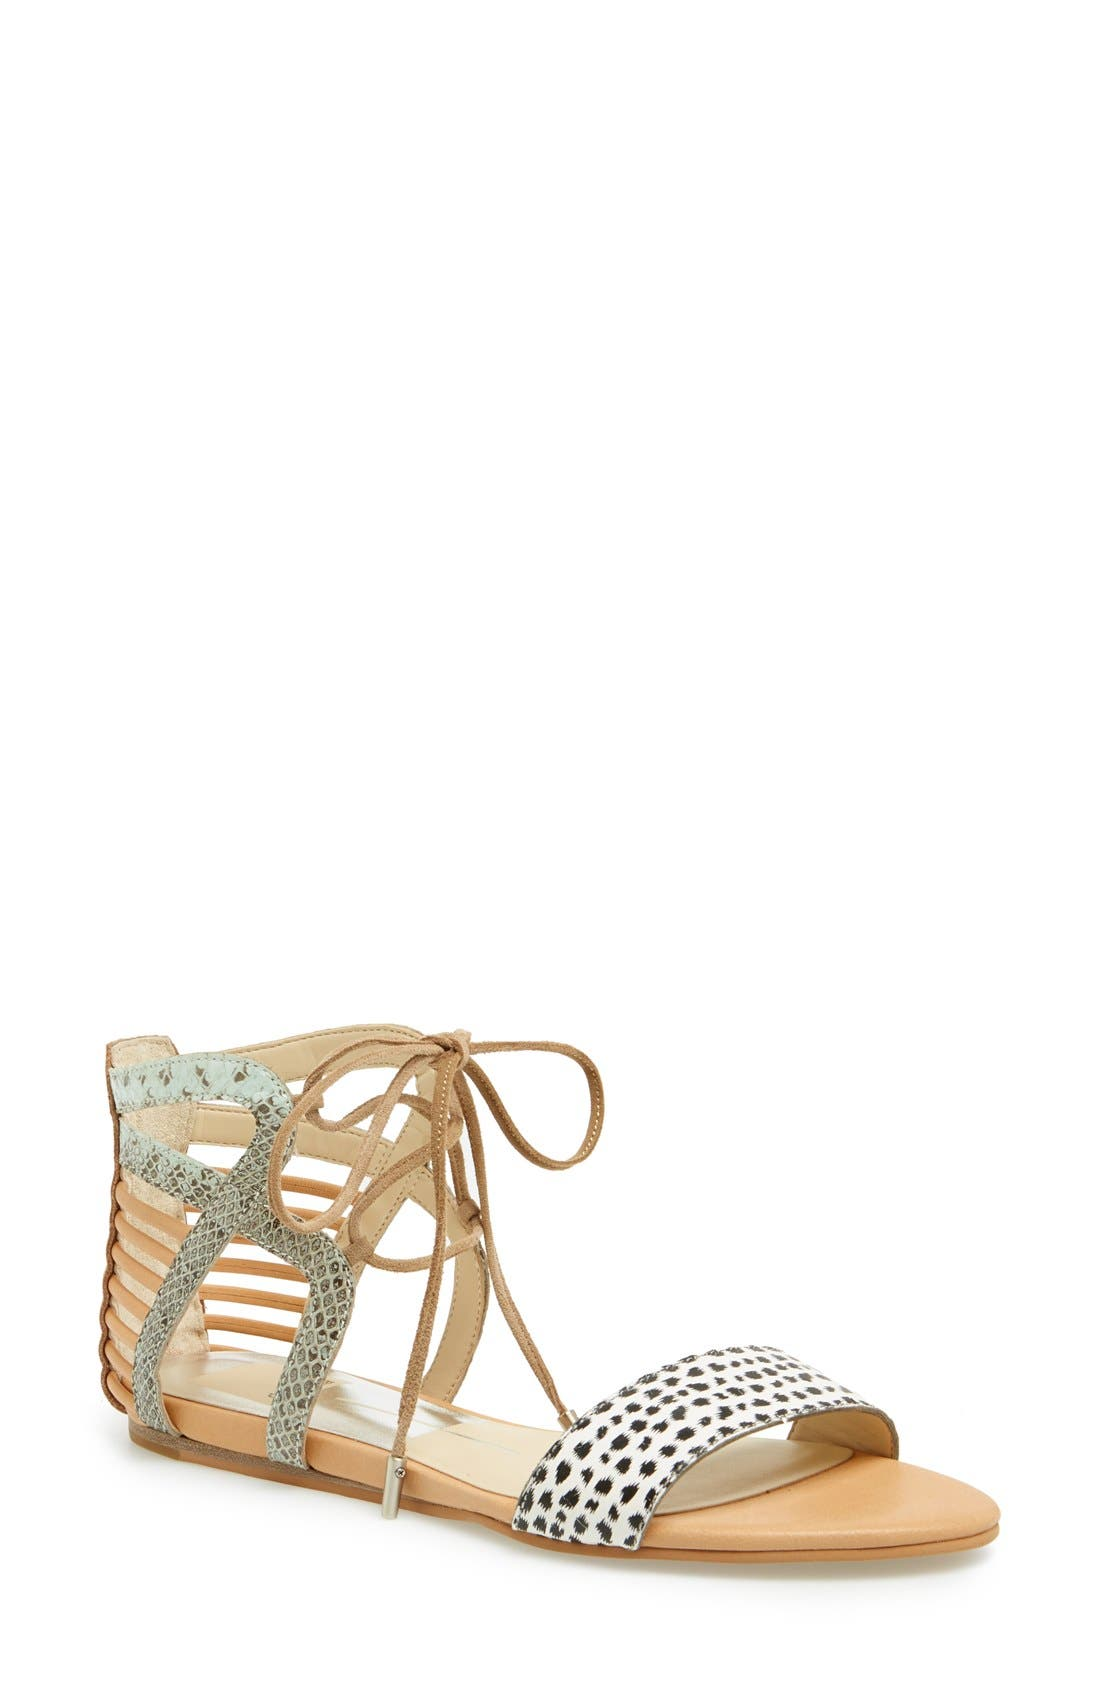 Alternate Image 1 Selected - Dolce Vita 'Ashtyn' Mixed Media Sandal (Women)